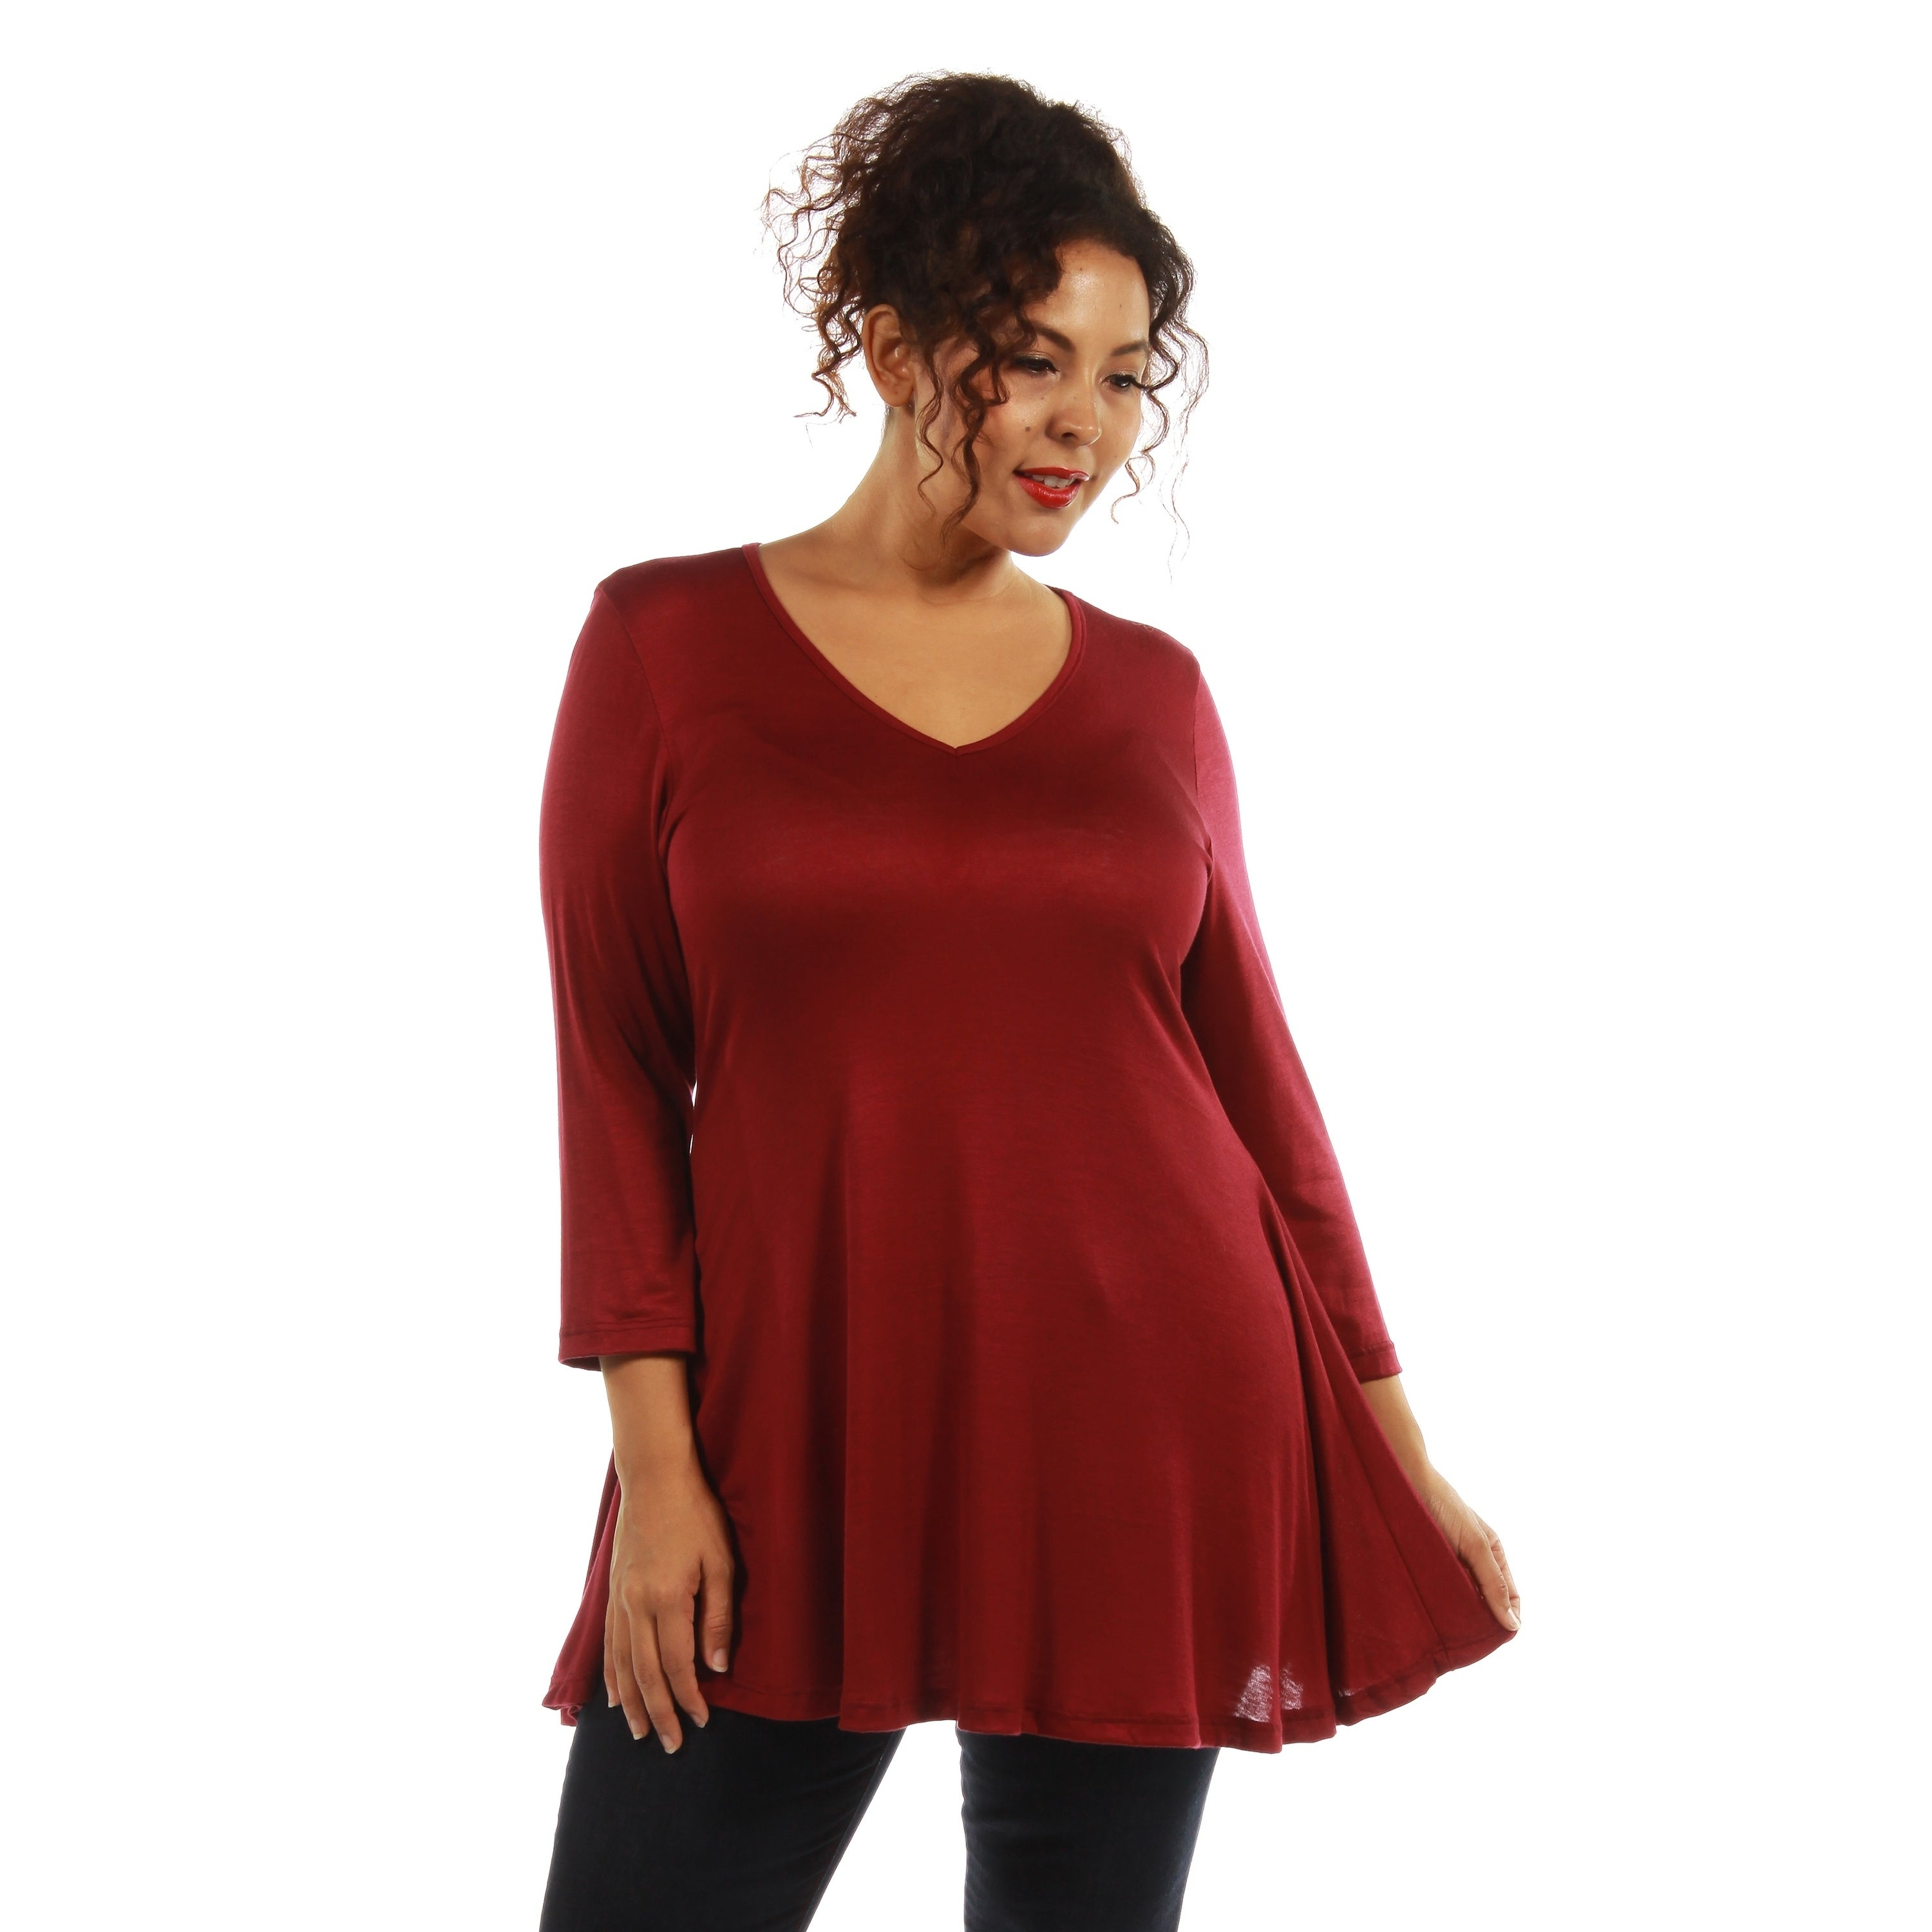 56e1d1a1dd54cb Shop 24 7 Comfort Apparel Women s V-neck Tunic- Plus Size Included - On  Sale - Free Shipping On Orders Over  45 - Overstock - 9464431